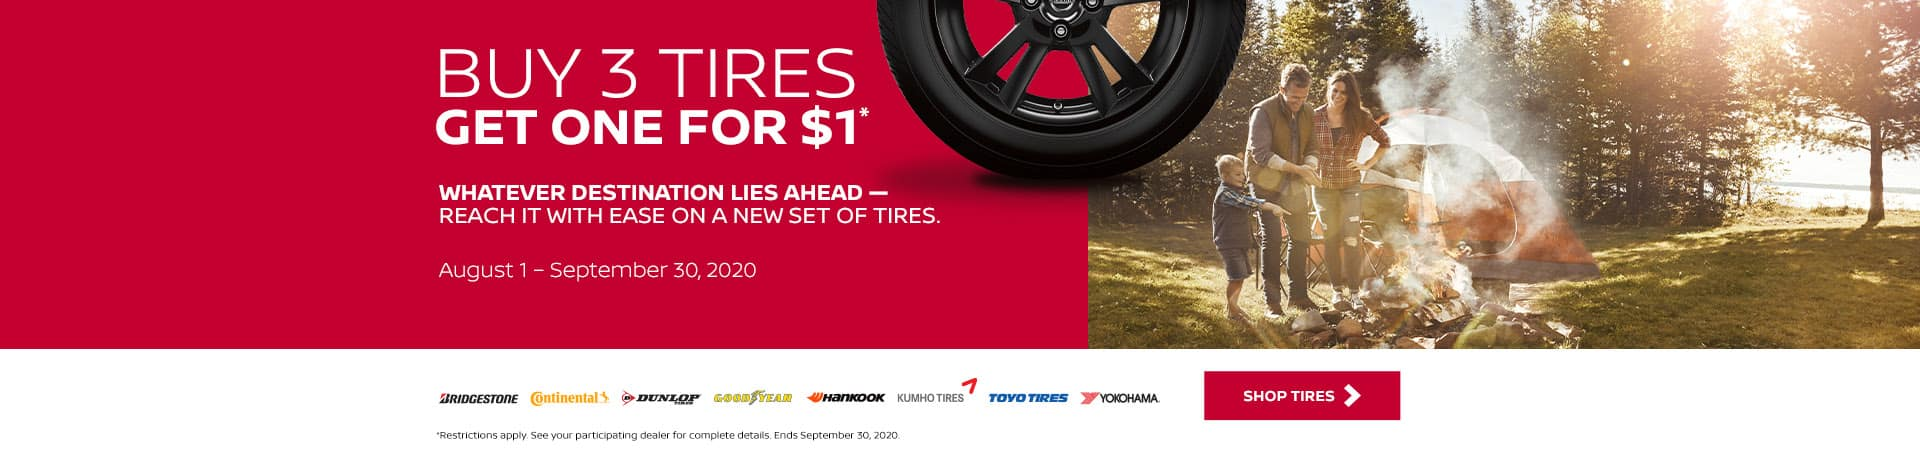 Buy 3 Tires, Get 1 for $1